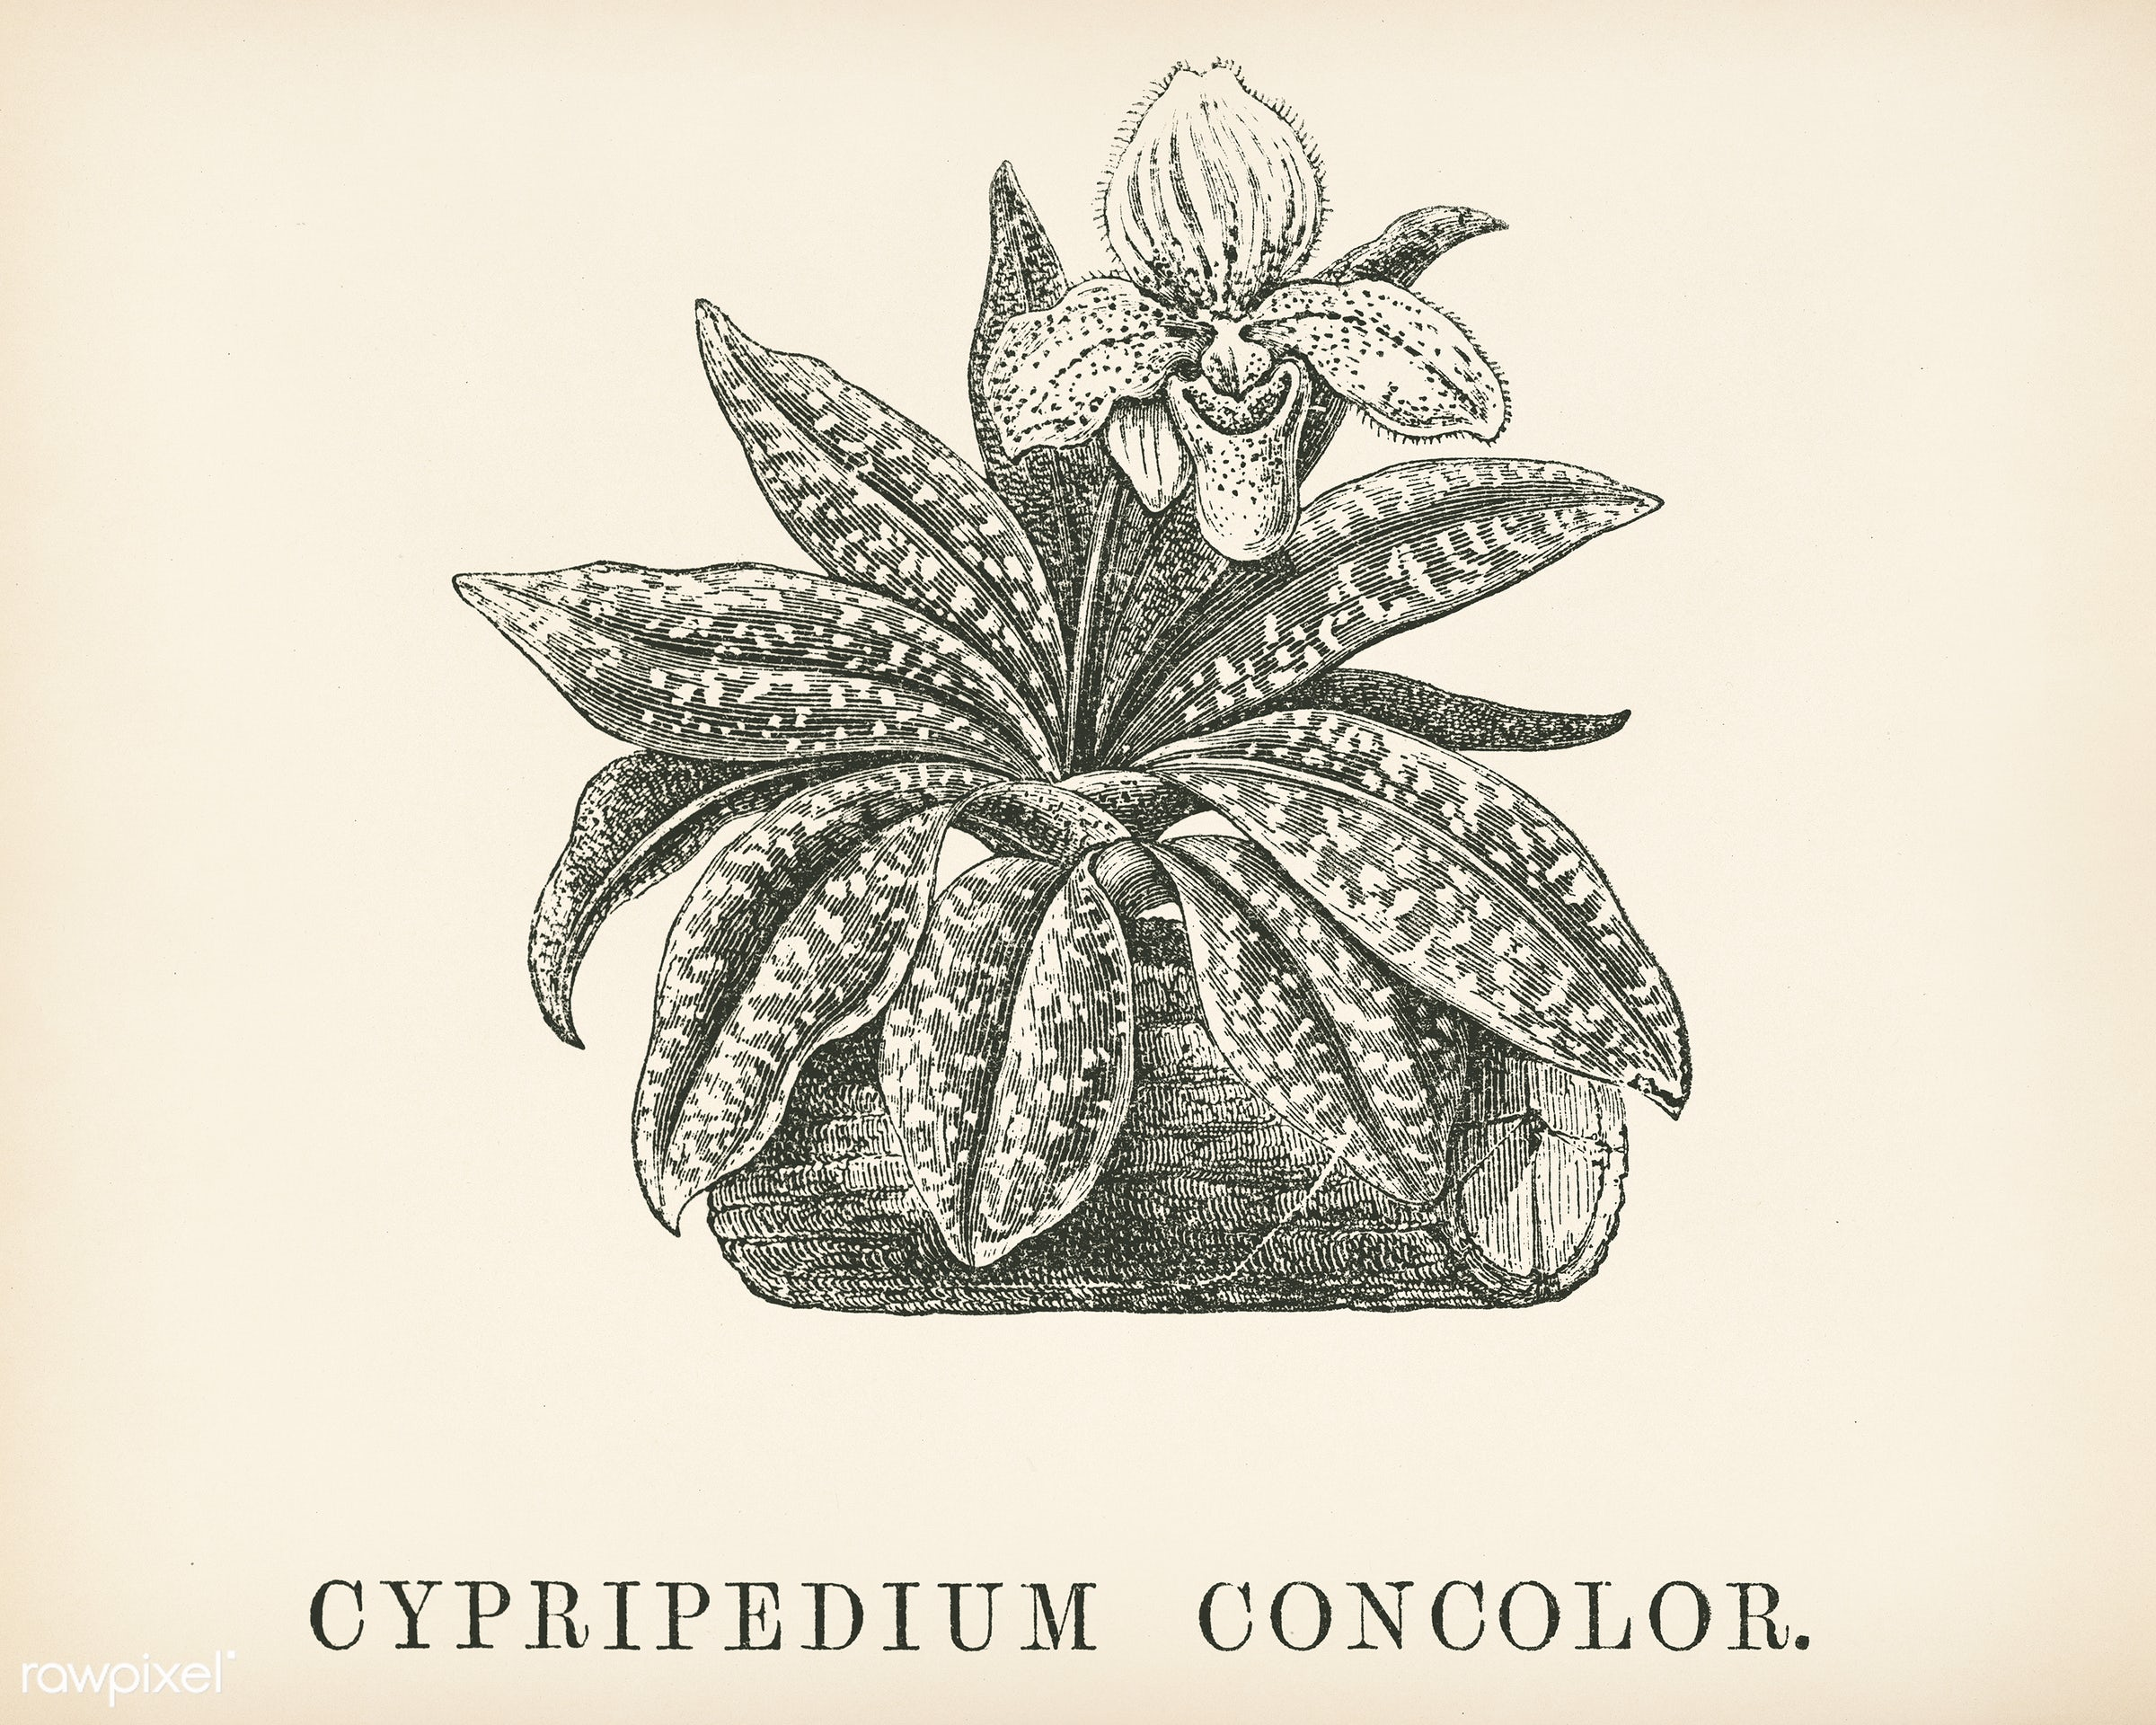 Cypripedium Concolor engraved by Benjamin Fawcett (1808-1893) for Shirley Hibberd's (1825-1890) New and Rare Beautiful...